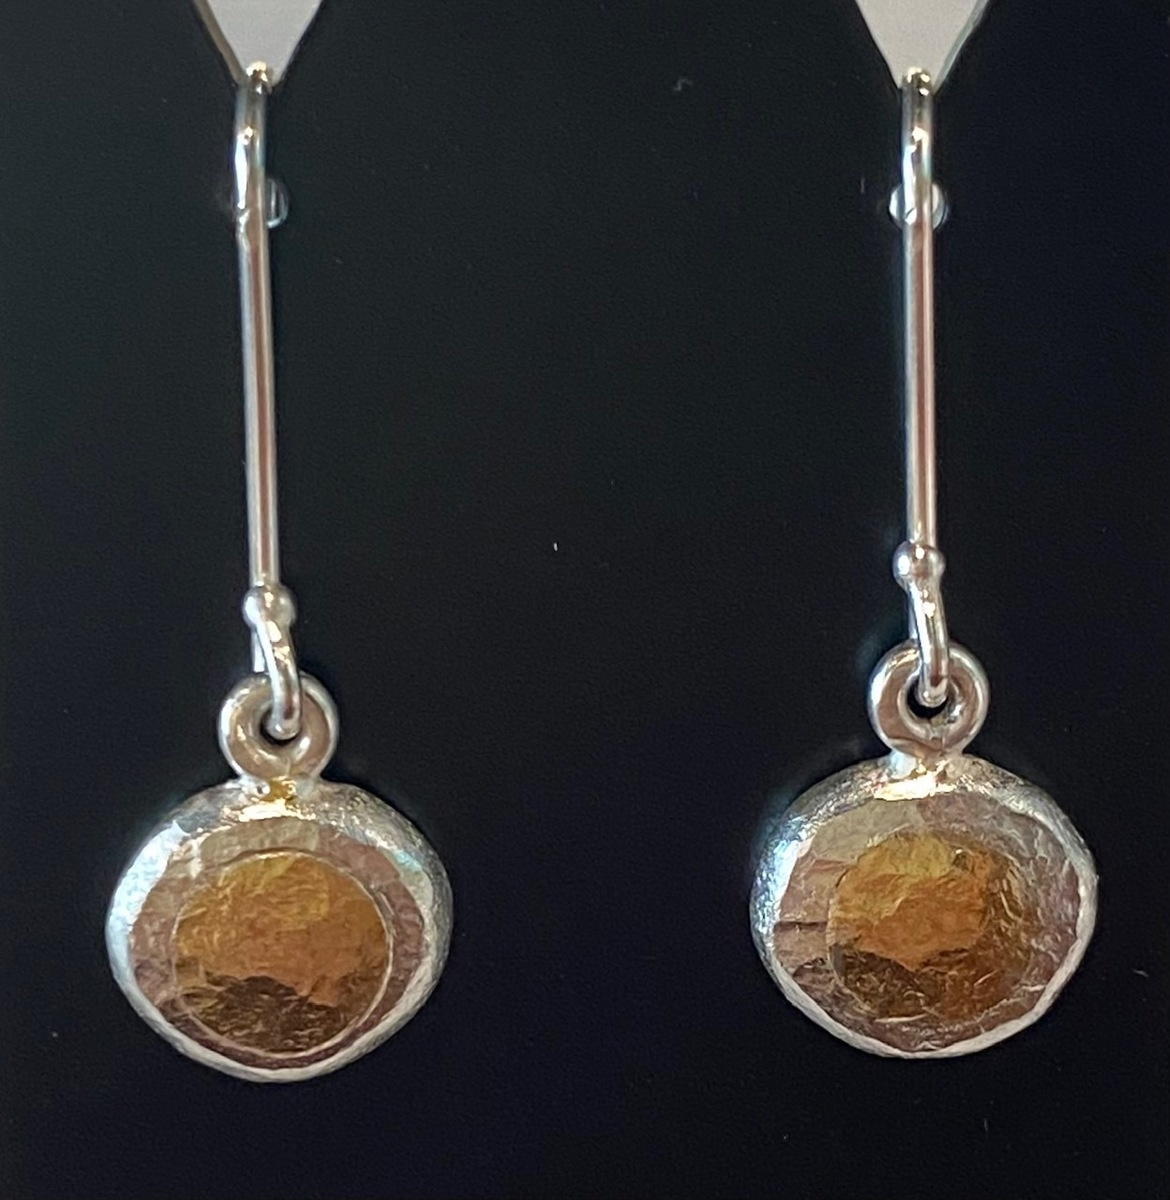 Fine and Sterling silver earrings with 22 ct. gold - hooks (long)